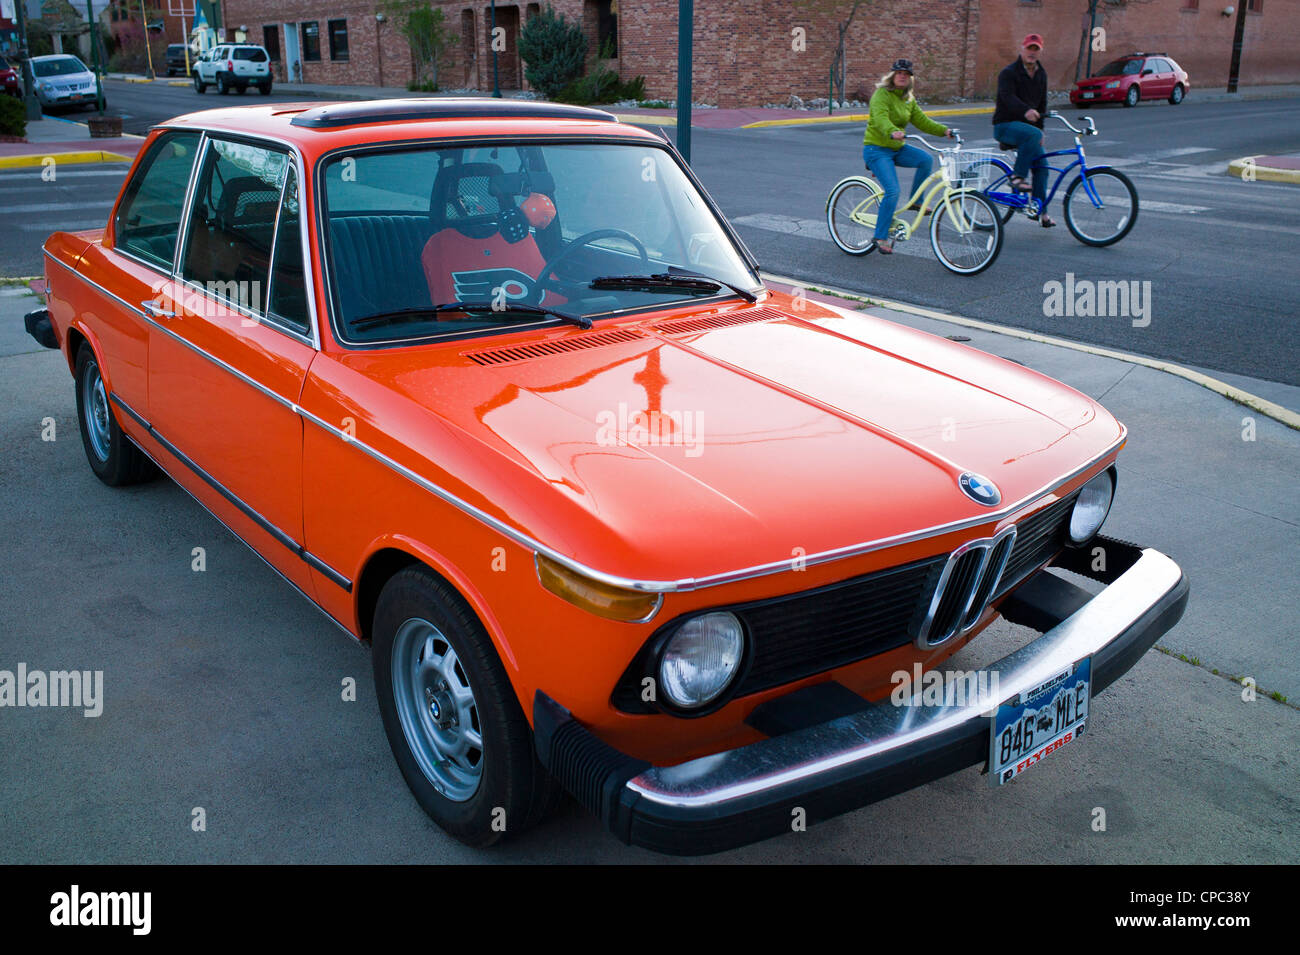 Old BMW sports car, painted orange & black in honor of the Philadelphia Flyers National Hockey Team Stock Photo